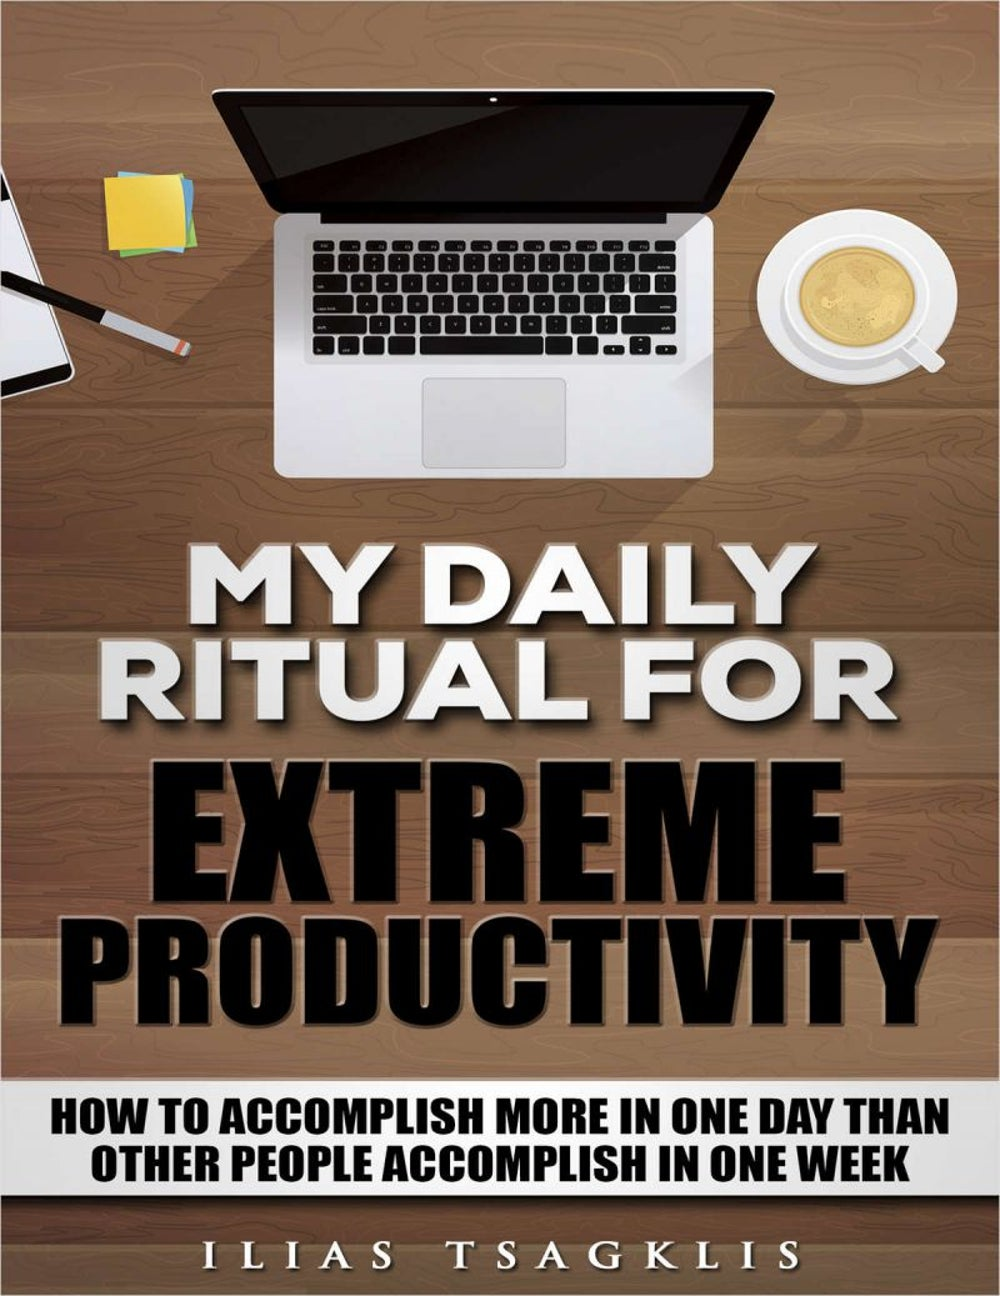 """My Daily Ritual for Extreme Productivity"""